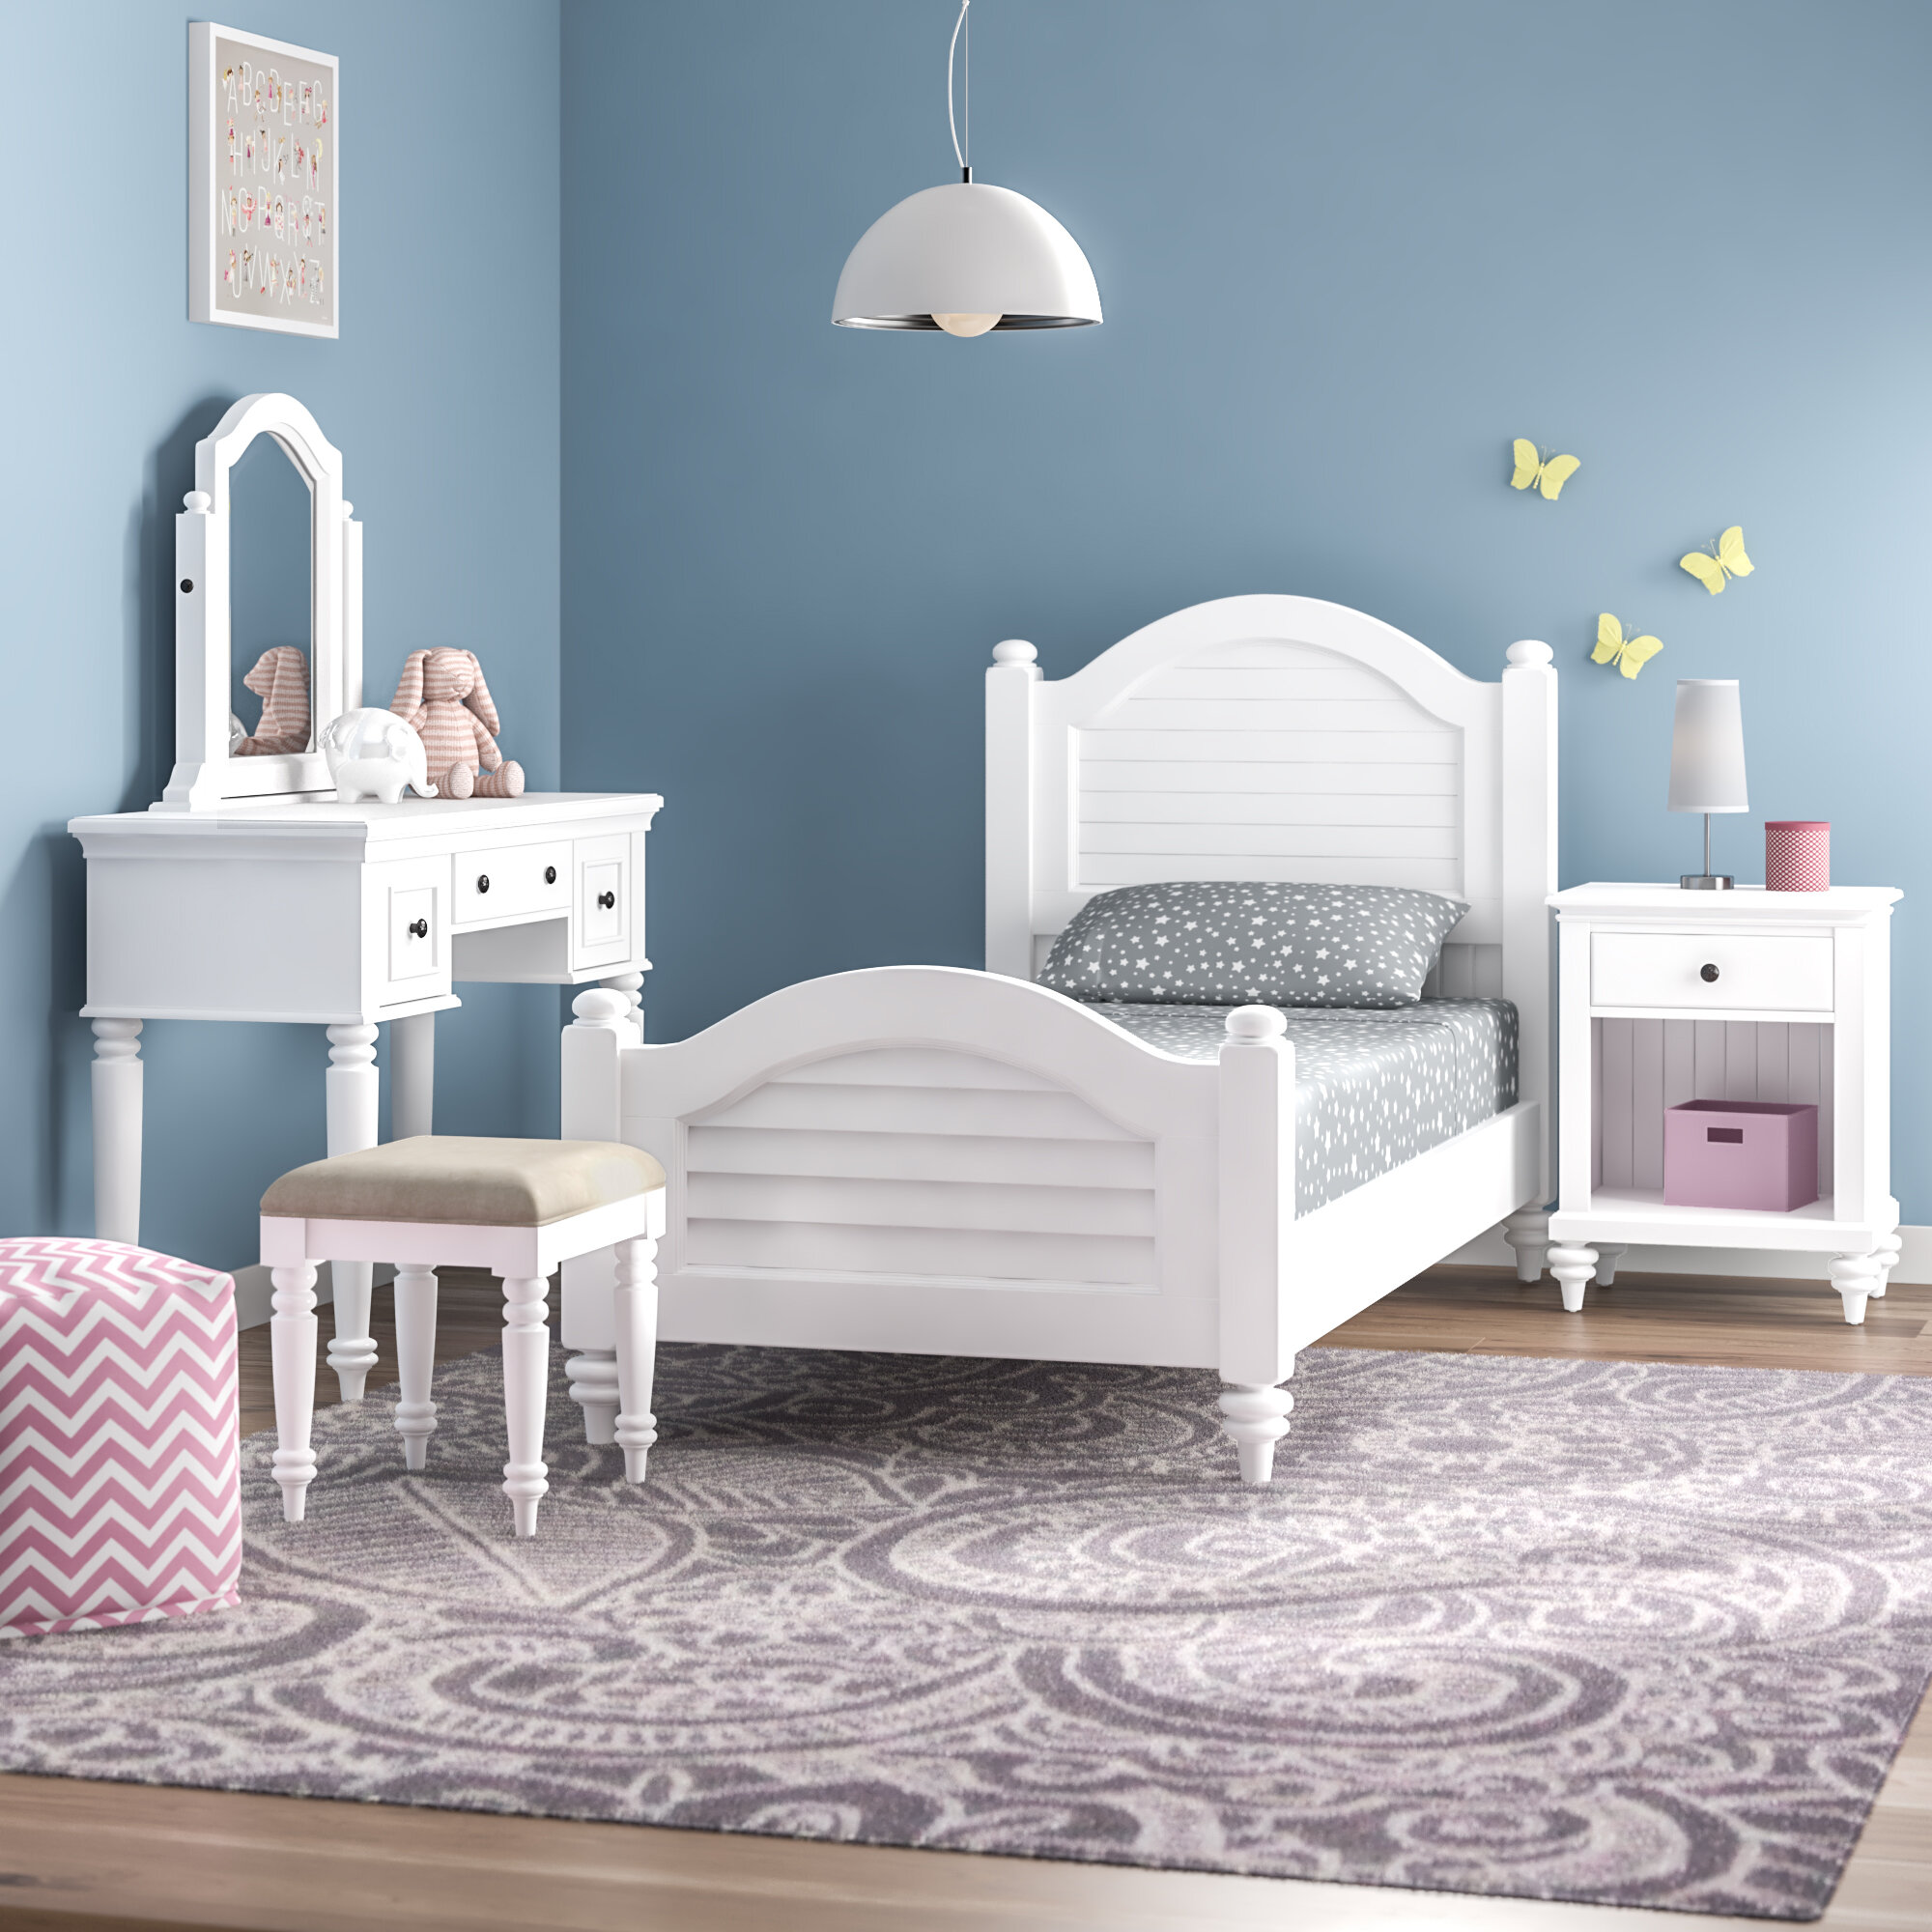 Awe Inspiring Fully Assembled Juliette Shabby Chic Champagne Double Bed Download Free Architecture Designs Rallybritishbridgeorg